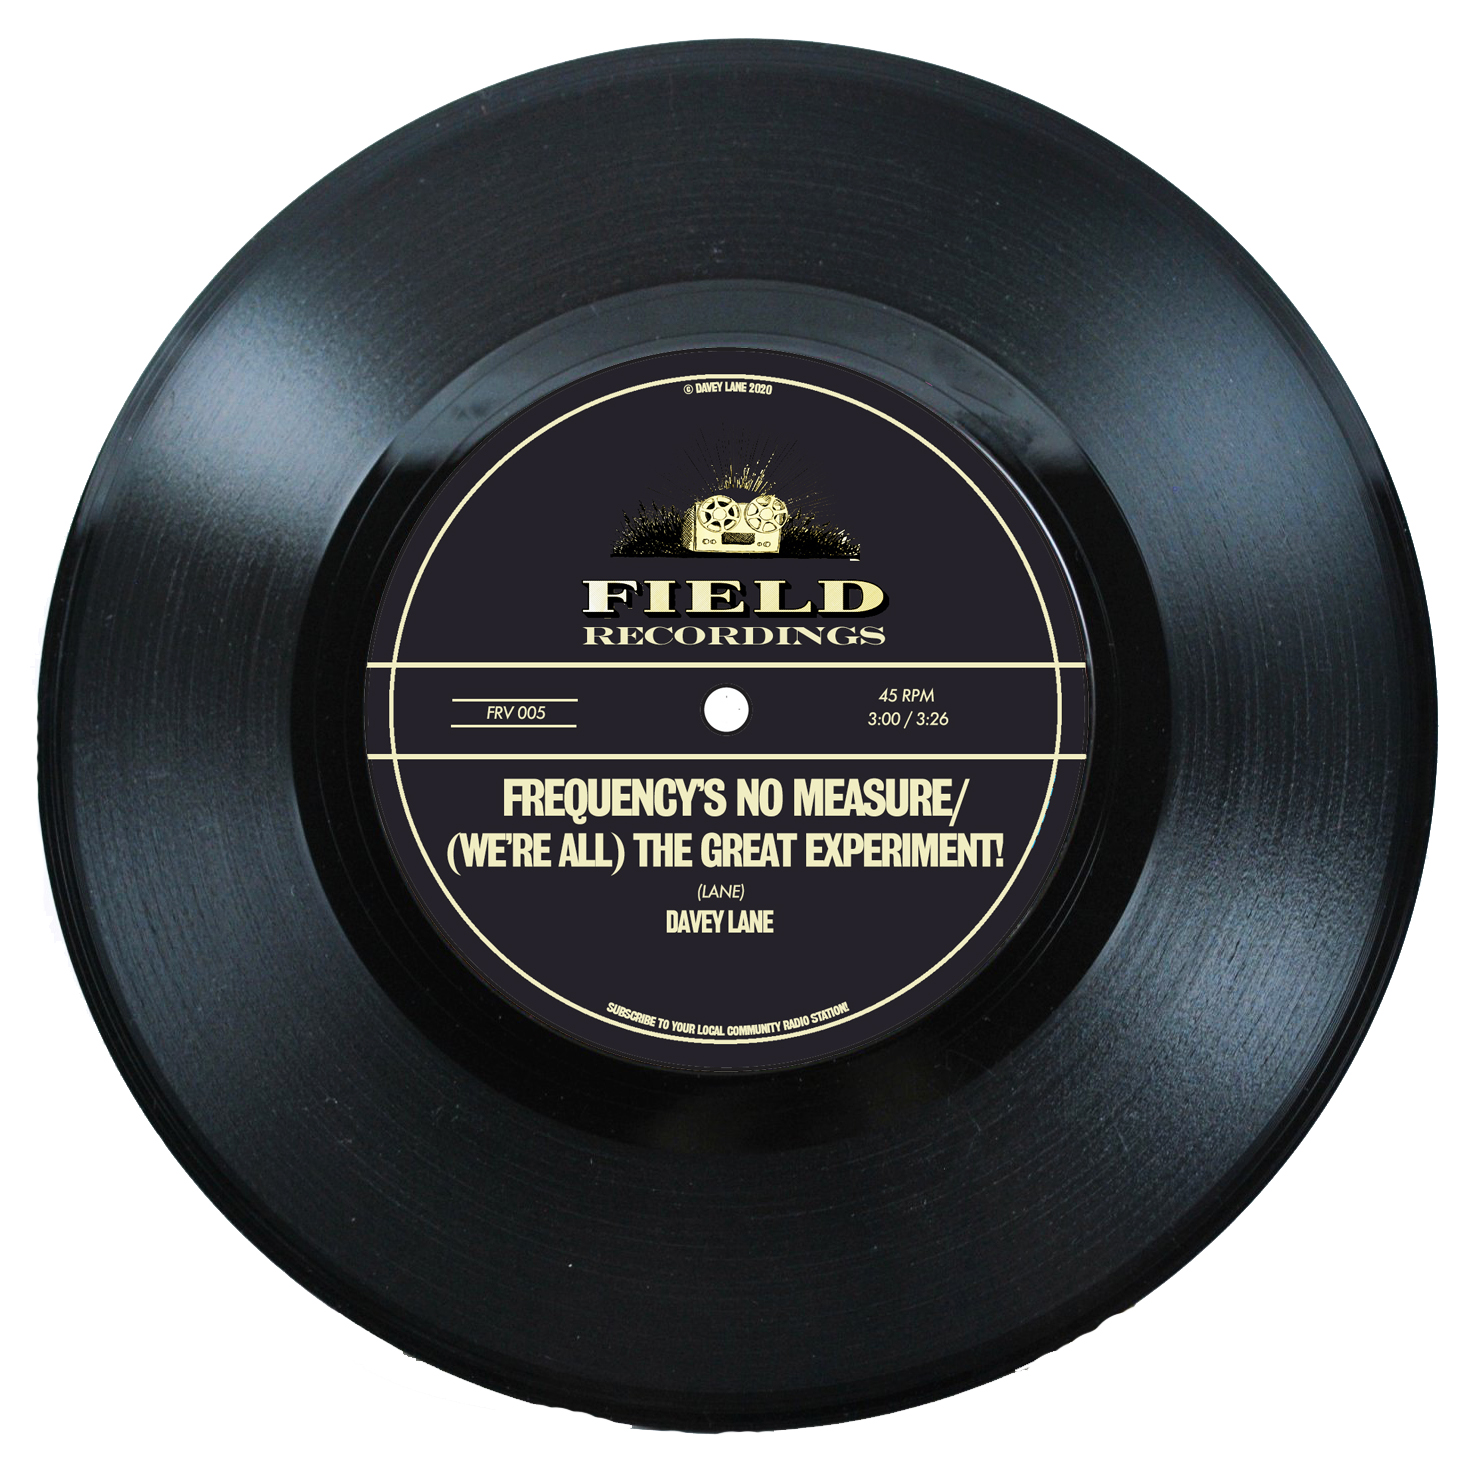 Frequency's No Measure / (We're All) The Great Experiment! - 7' Vinyl Single.